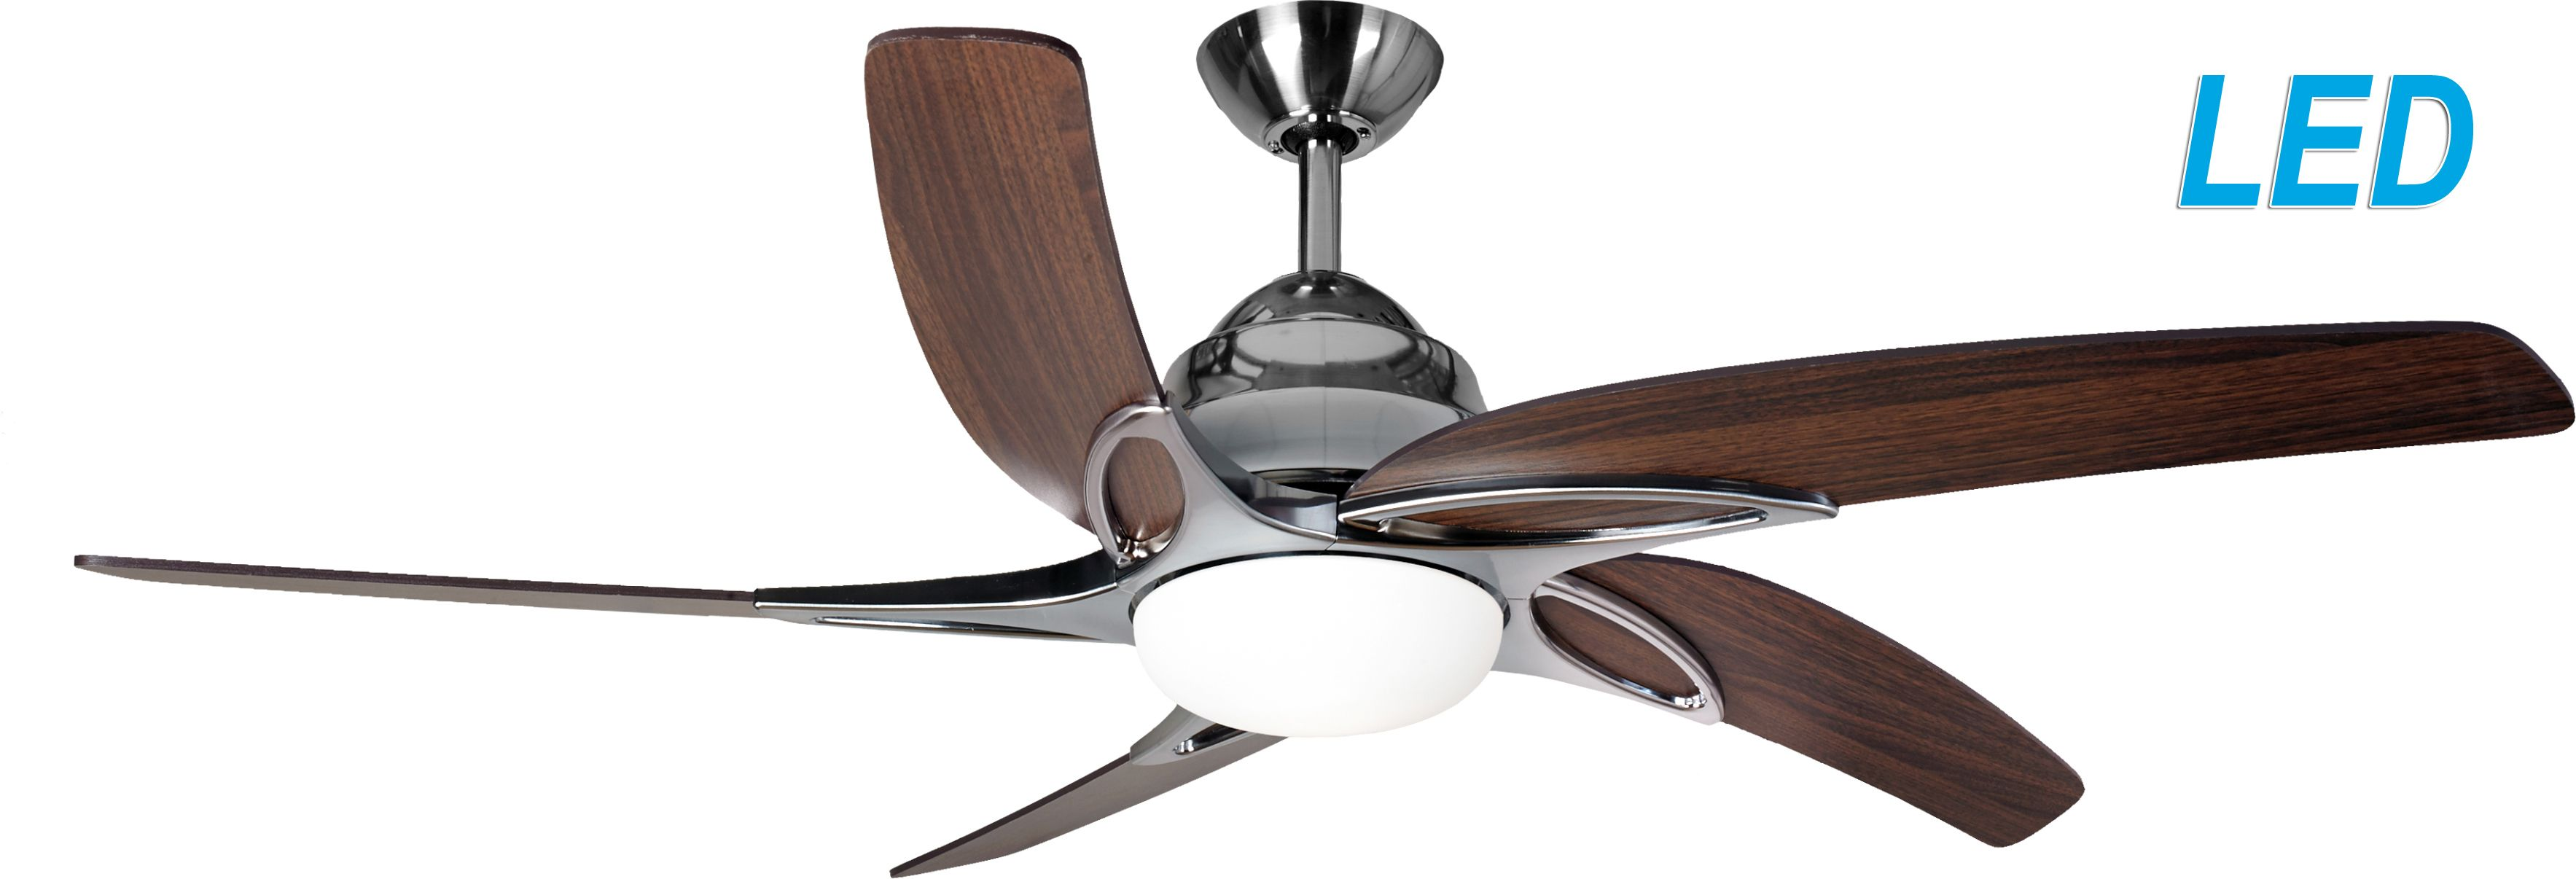 Oak Ceiling Fans With Lights : Fantasia viper stainless steel with dark oak blades